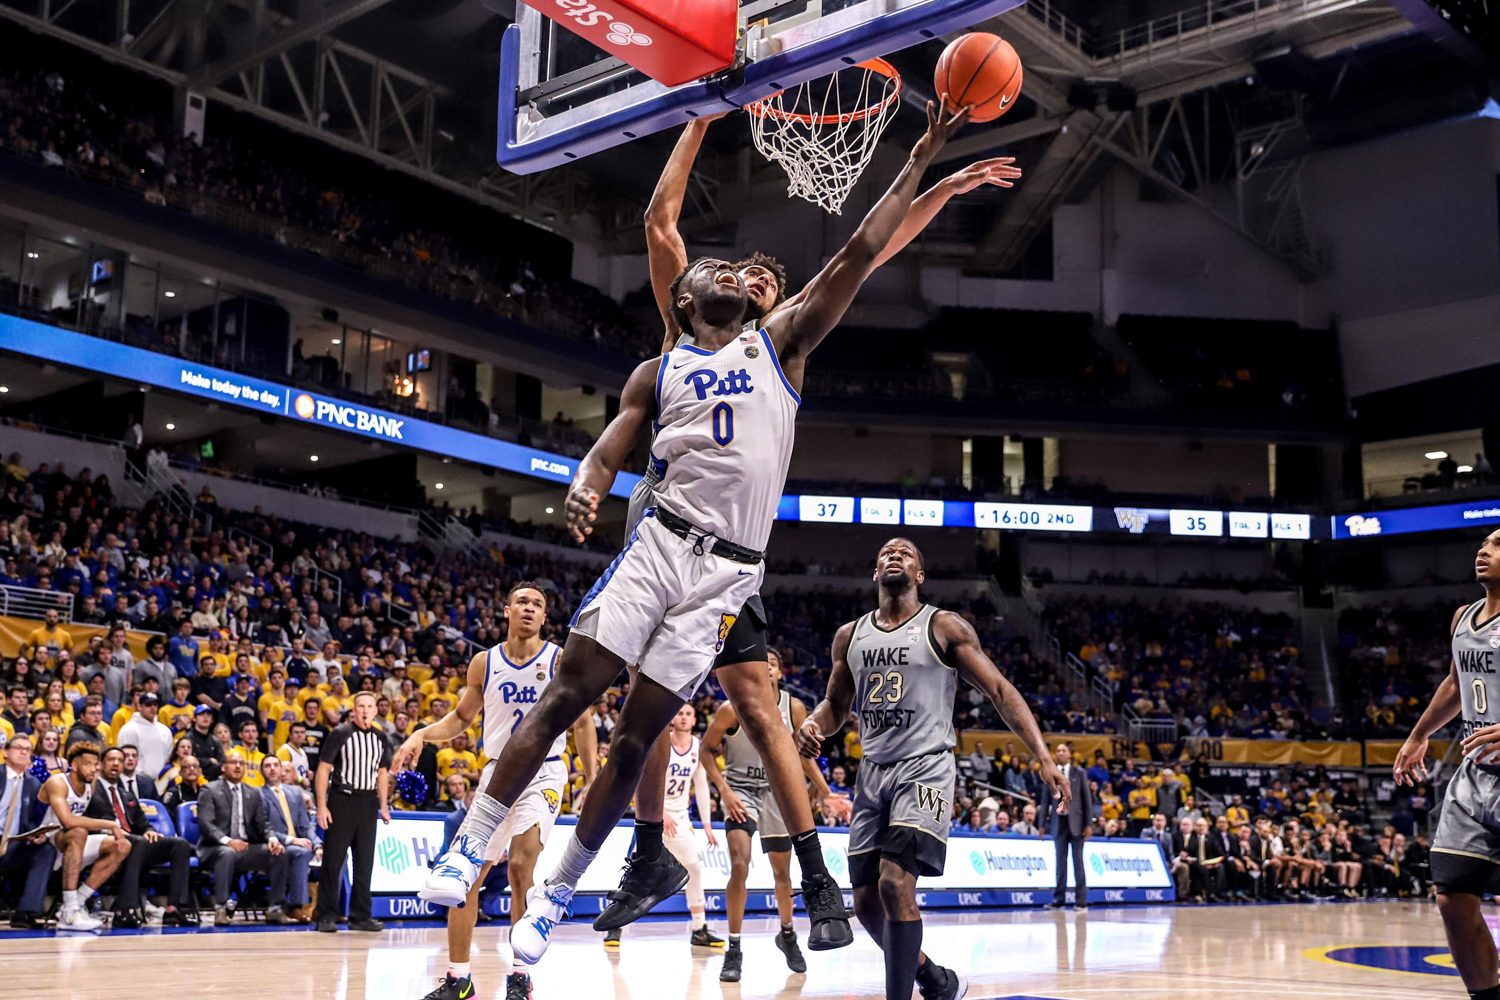 The Pitt men's basketball team fell 69-65 to a Wake Forest team that was projected to finish last in the conference.